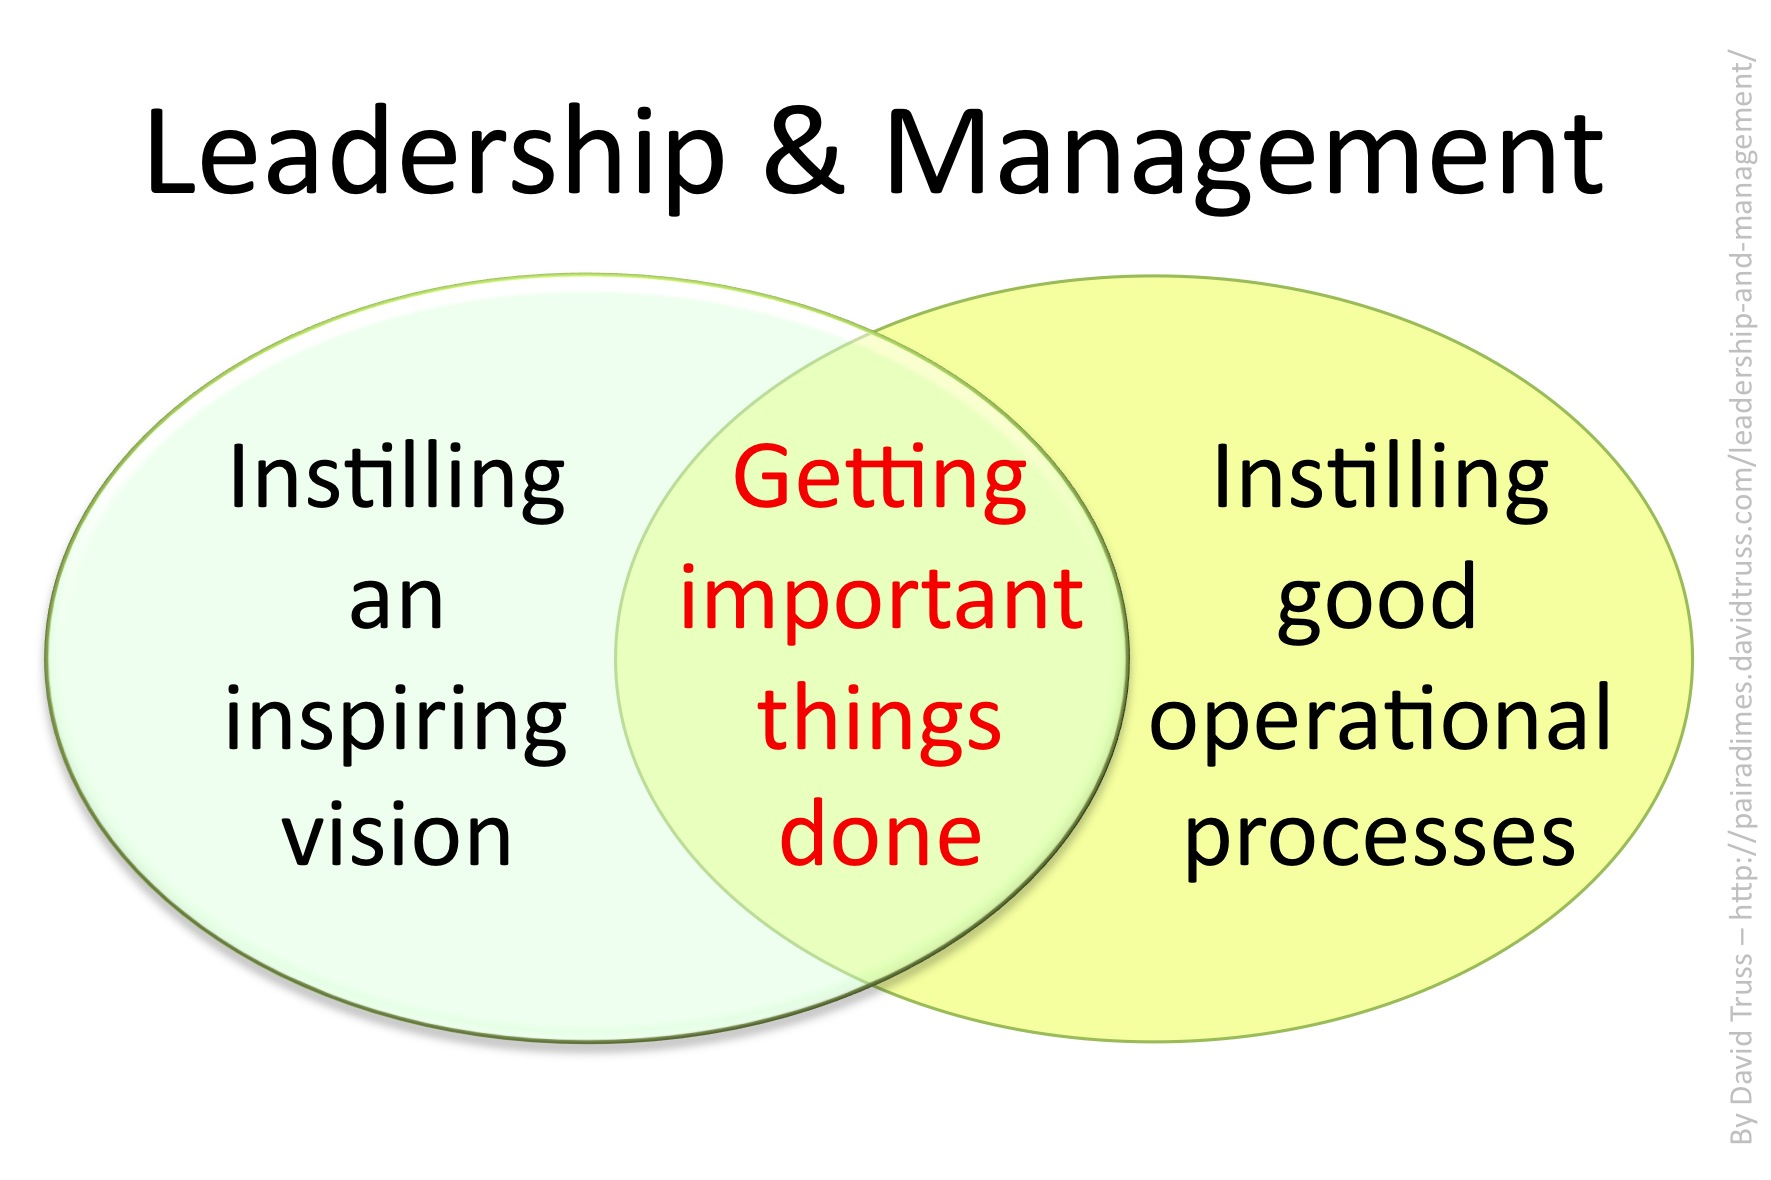 explain the differences between management and leadership and how cultivating leadership skills Managerial skills are often picked up over time and with trial and error methods   while leadership is in no way a perfect science, a good way to judge what   this insightful quote explains the difference between what people  goal, and  you cannot reach this goal without cultivating other leaders and.